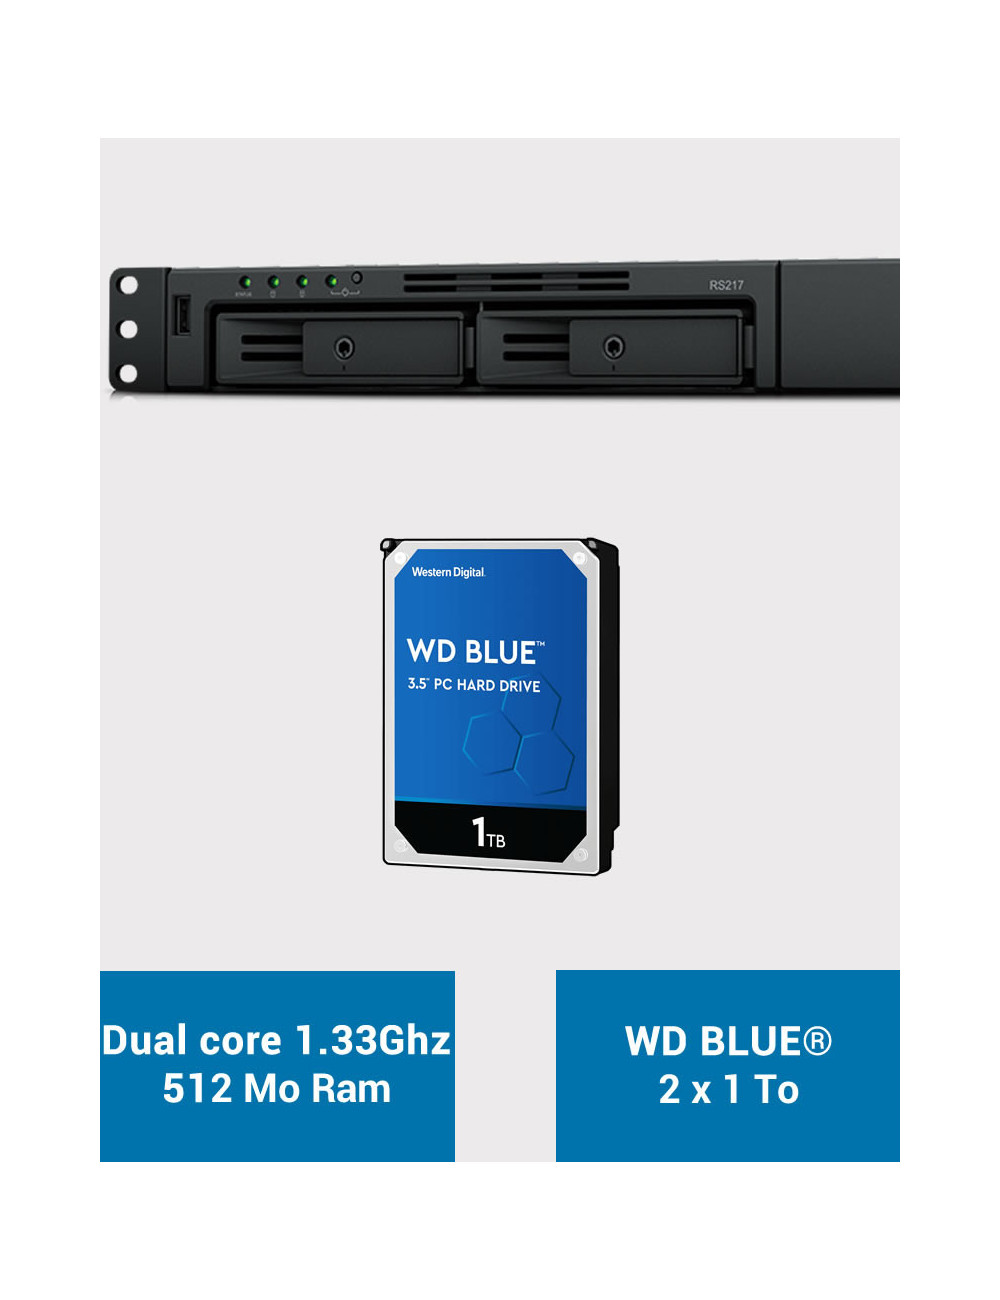 Synology RS217 Serveur NAS WD BLUE 2To (2x1To)